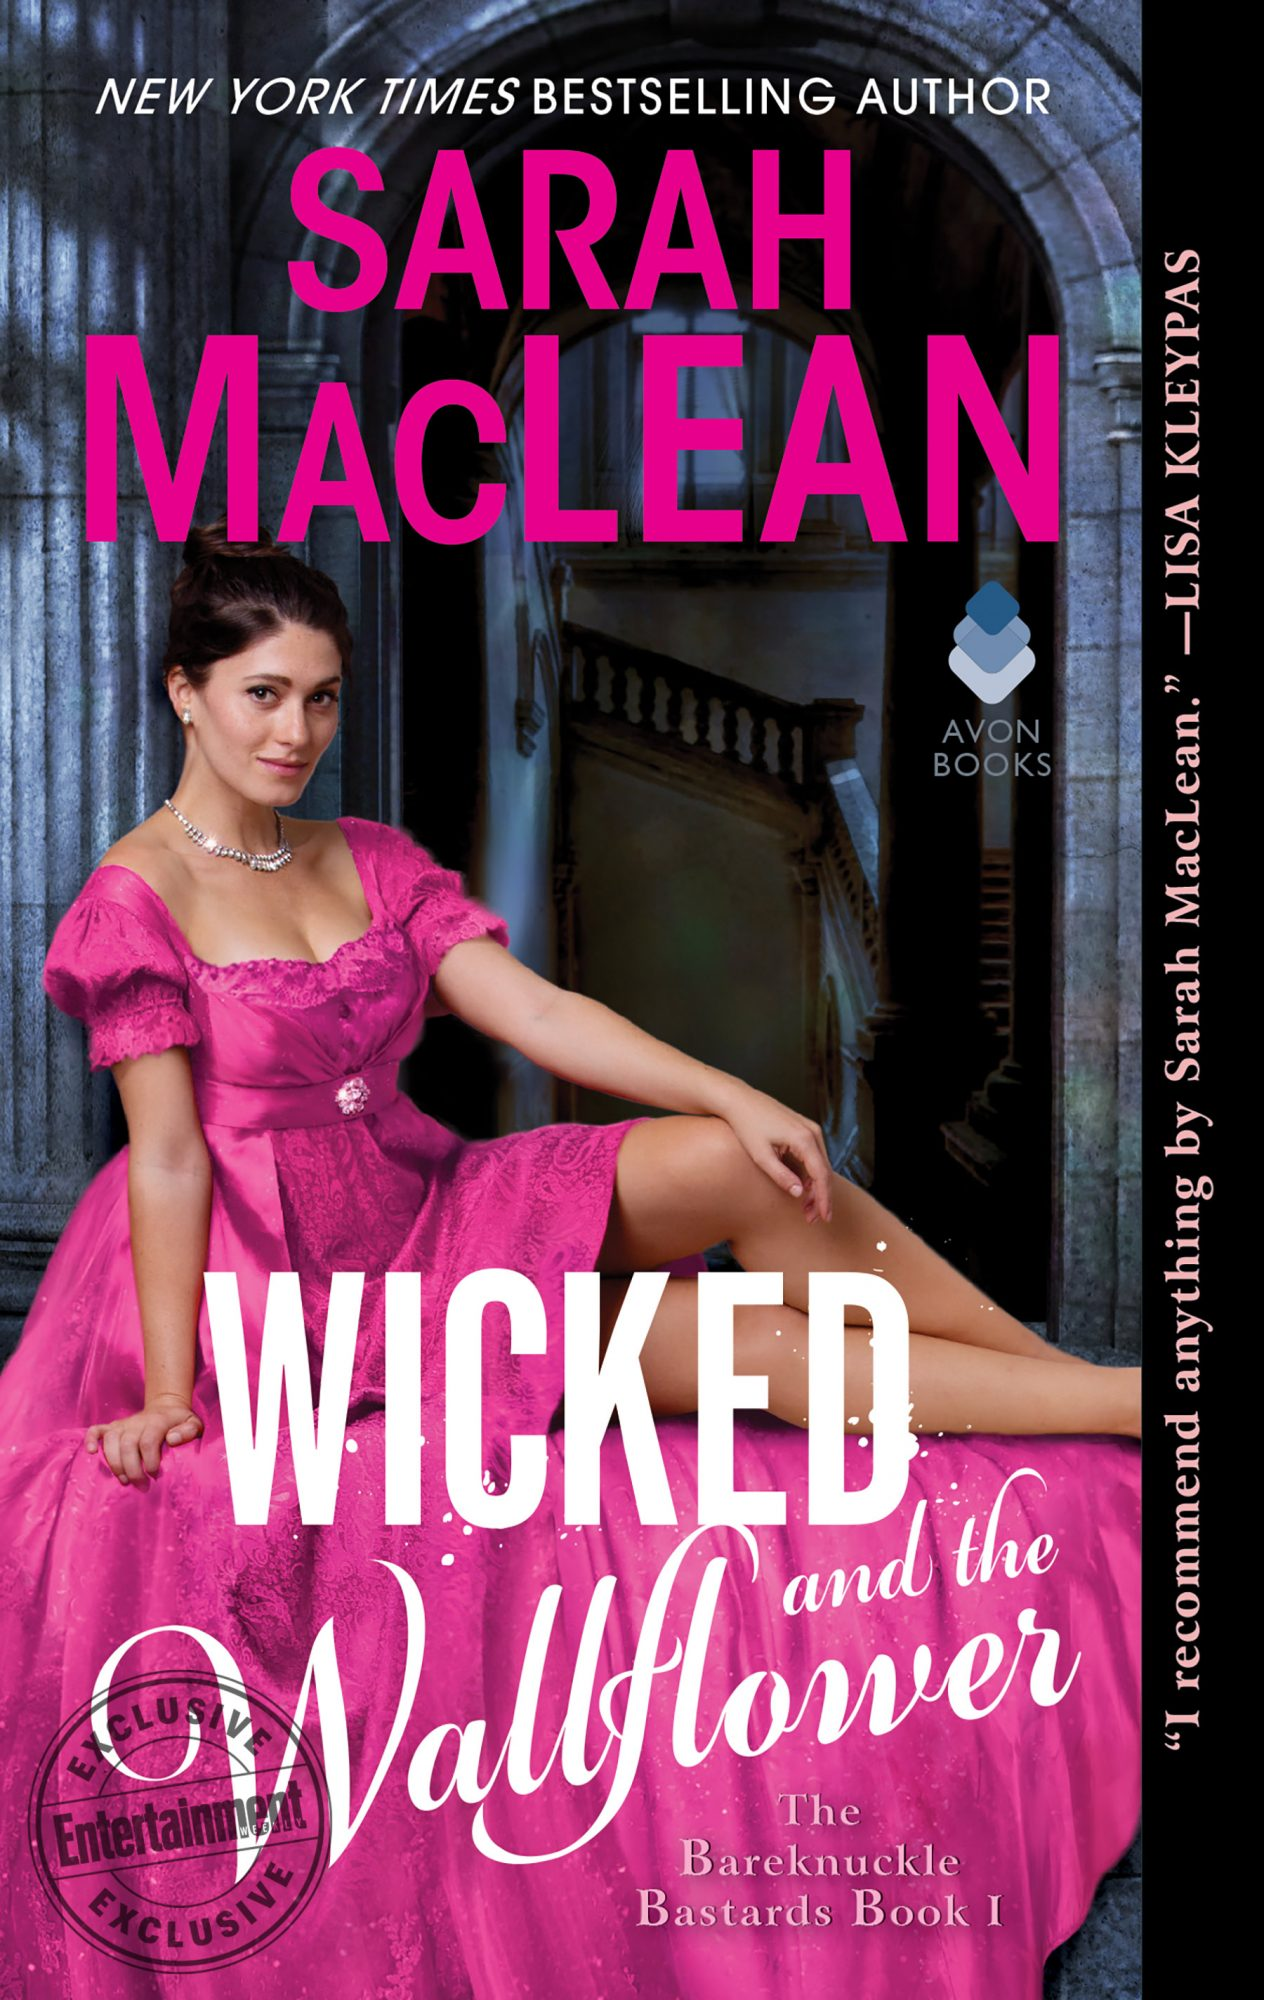 (WATERMARKED) Wicked and the Wallflower - embed